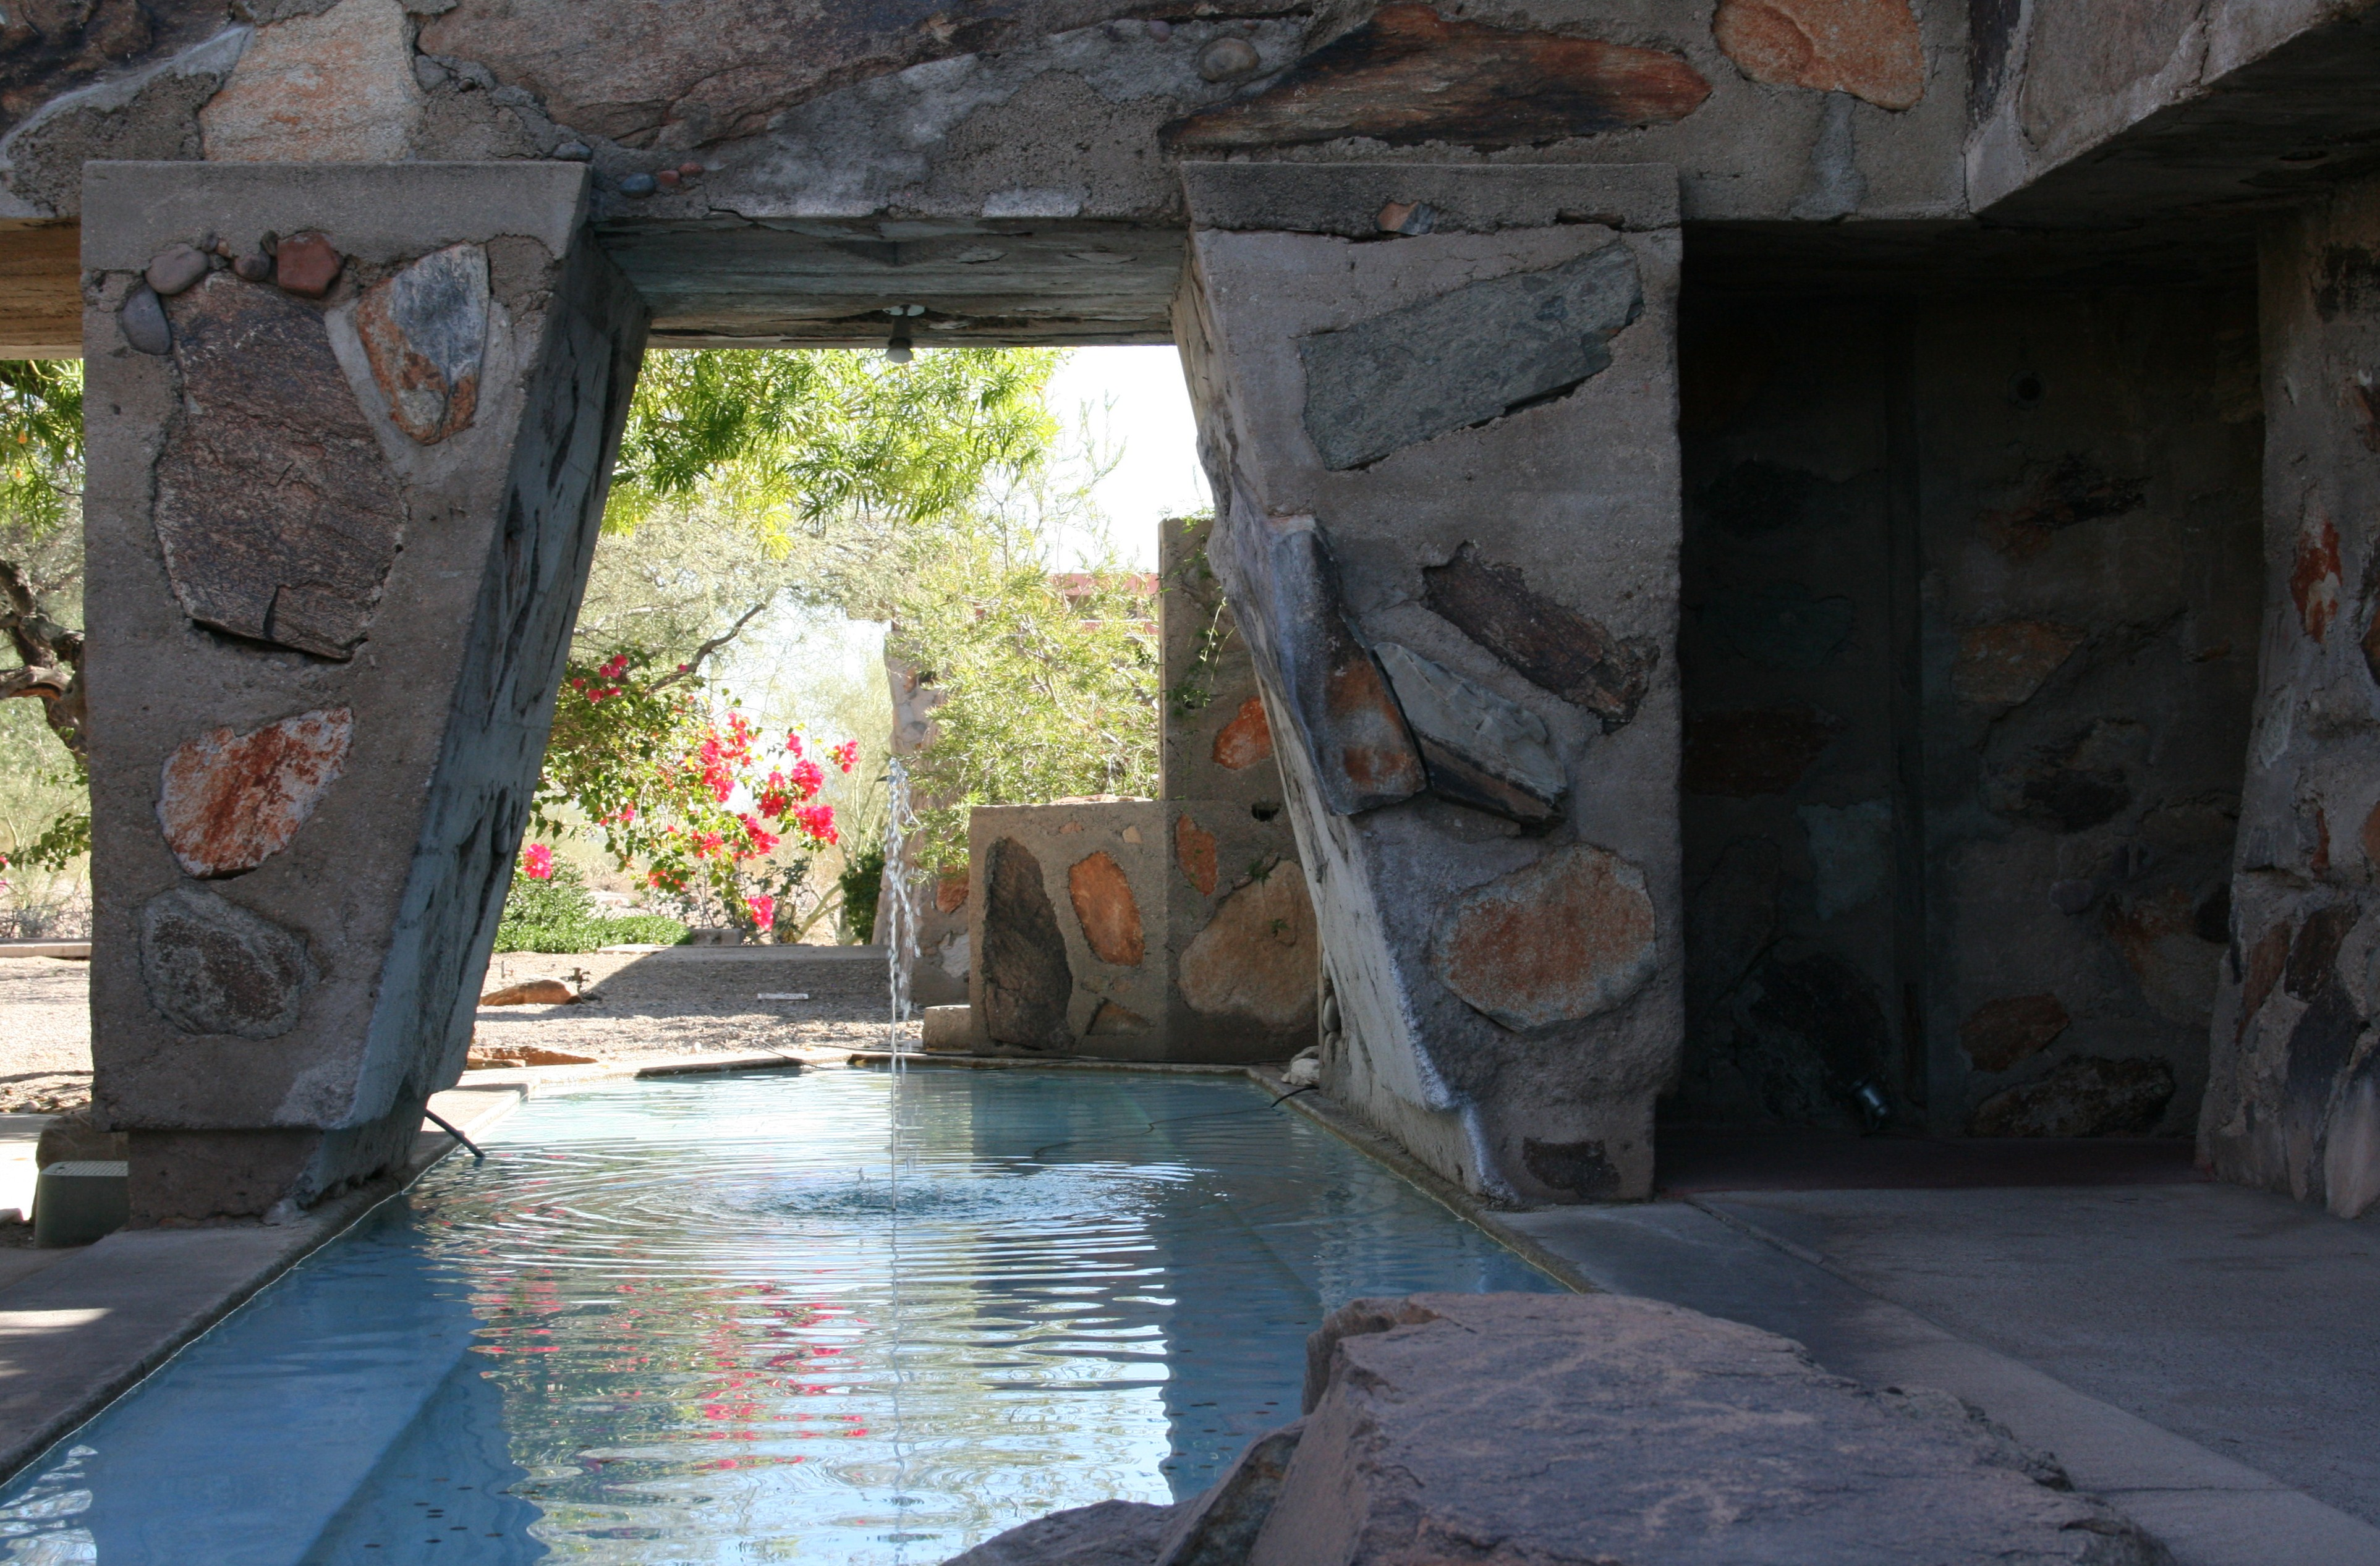 taliesin west Frank lloyd wright's taliesin west, his winter home in the arizona desert,  provides the backdrop for spring collections that infuse architectural.